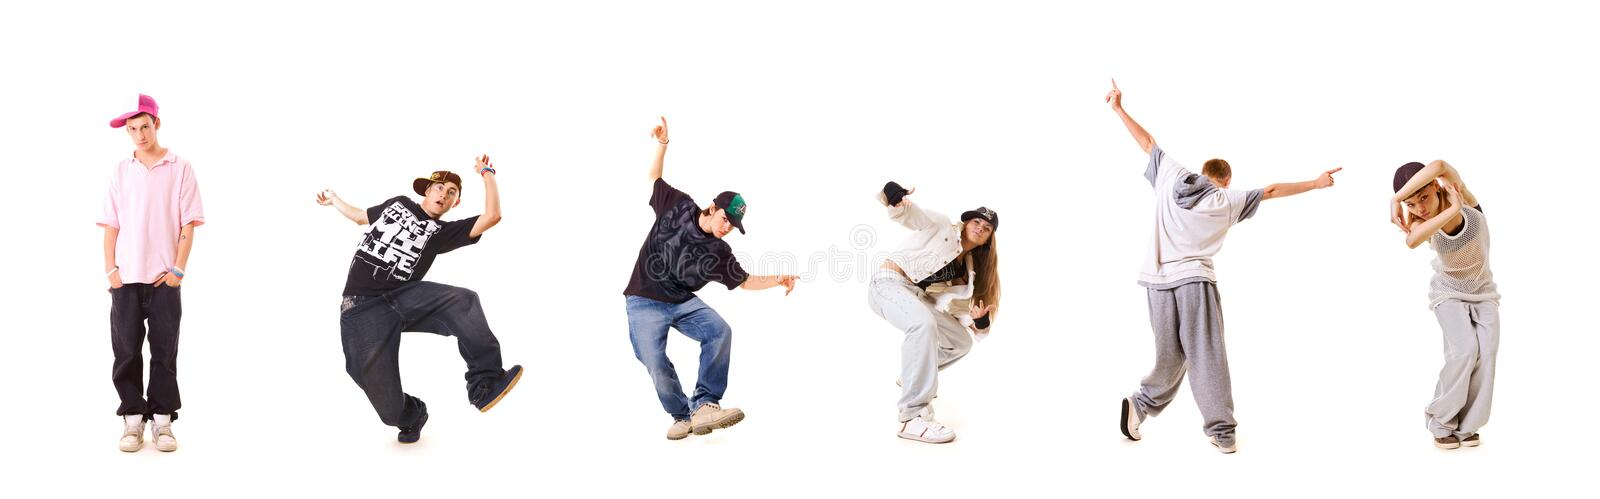 Photo set of new style dancers stock images